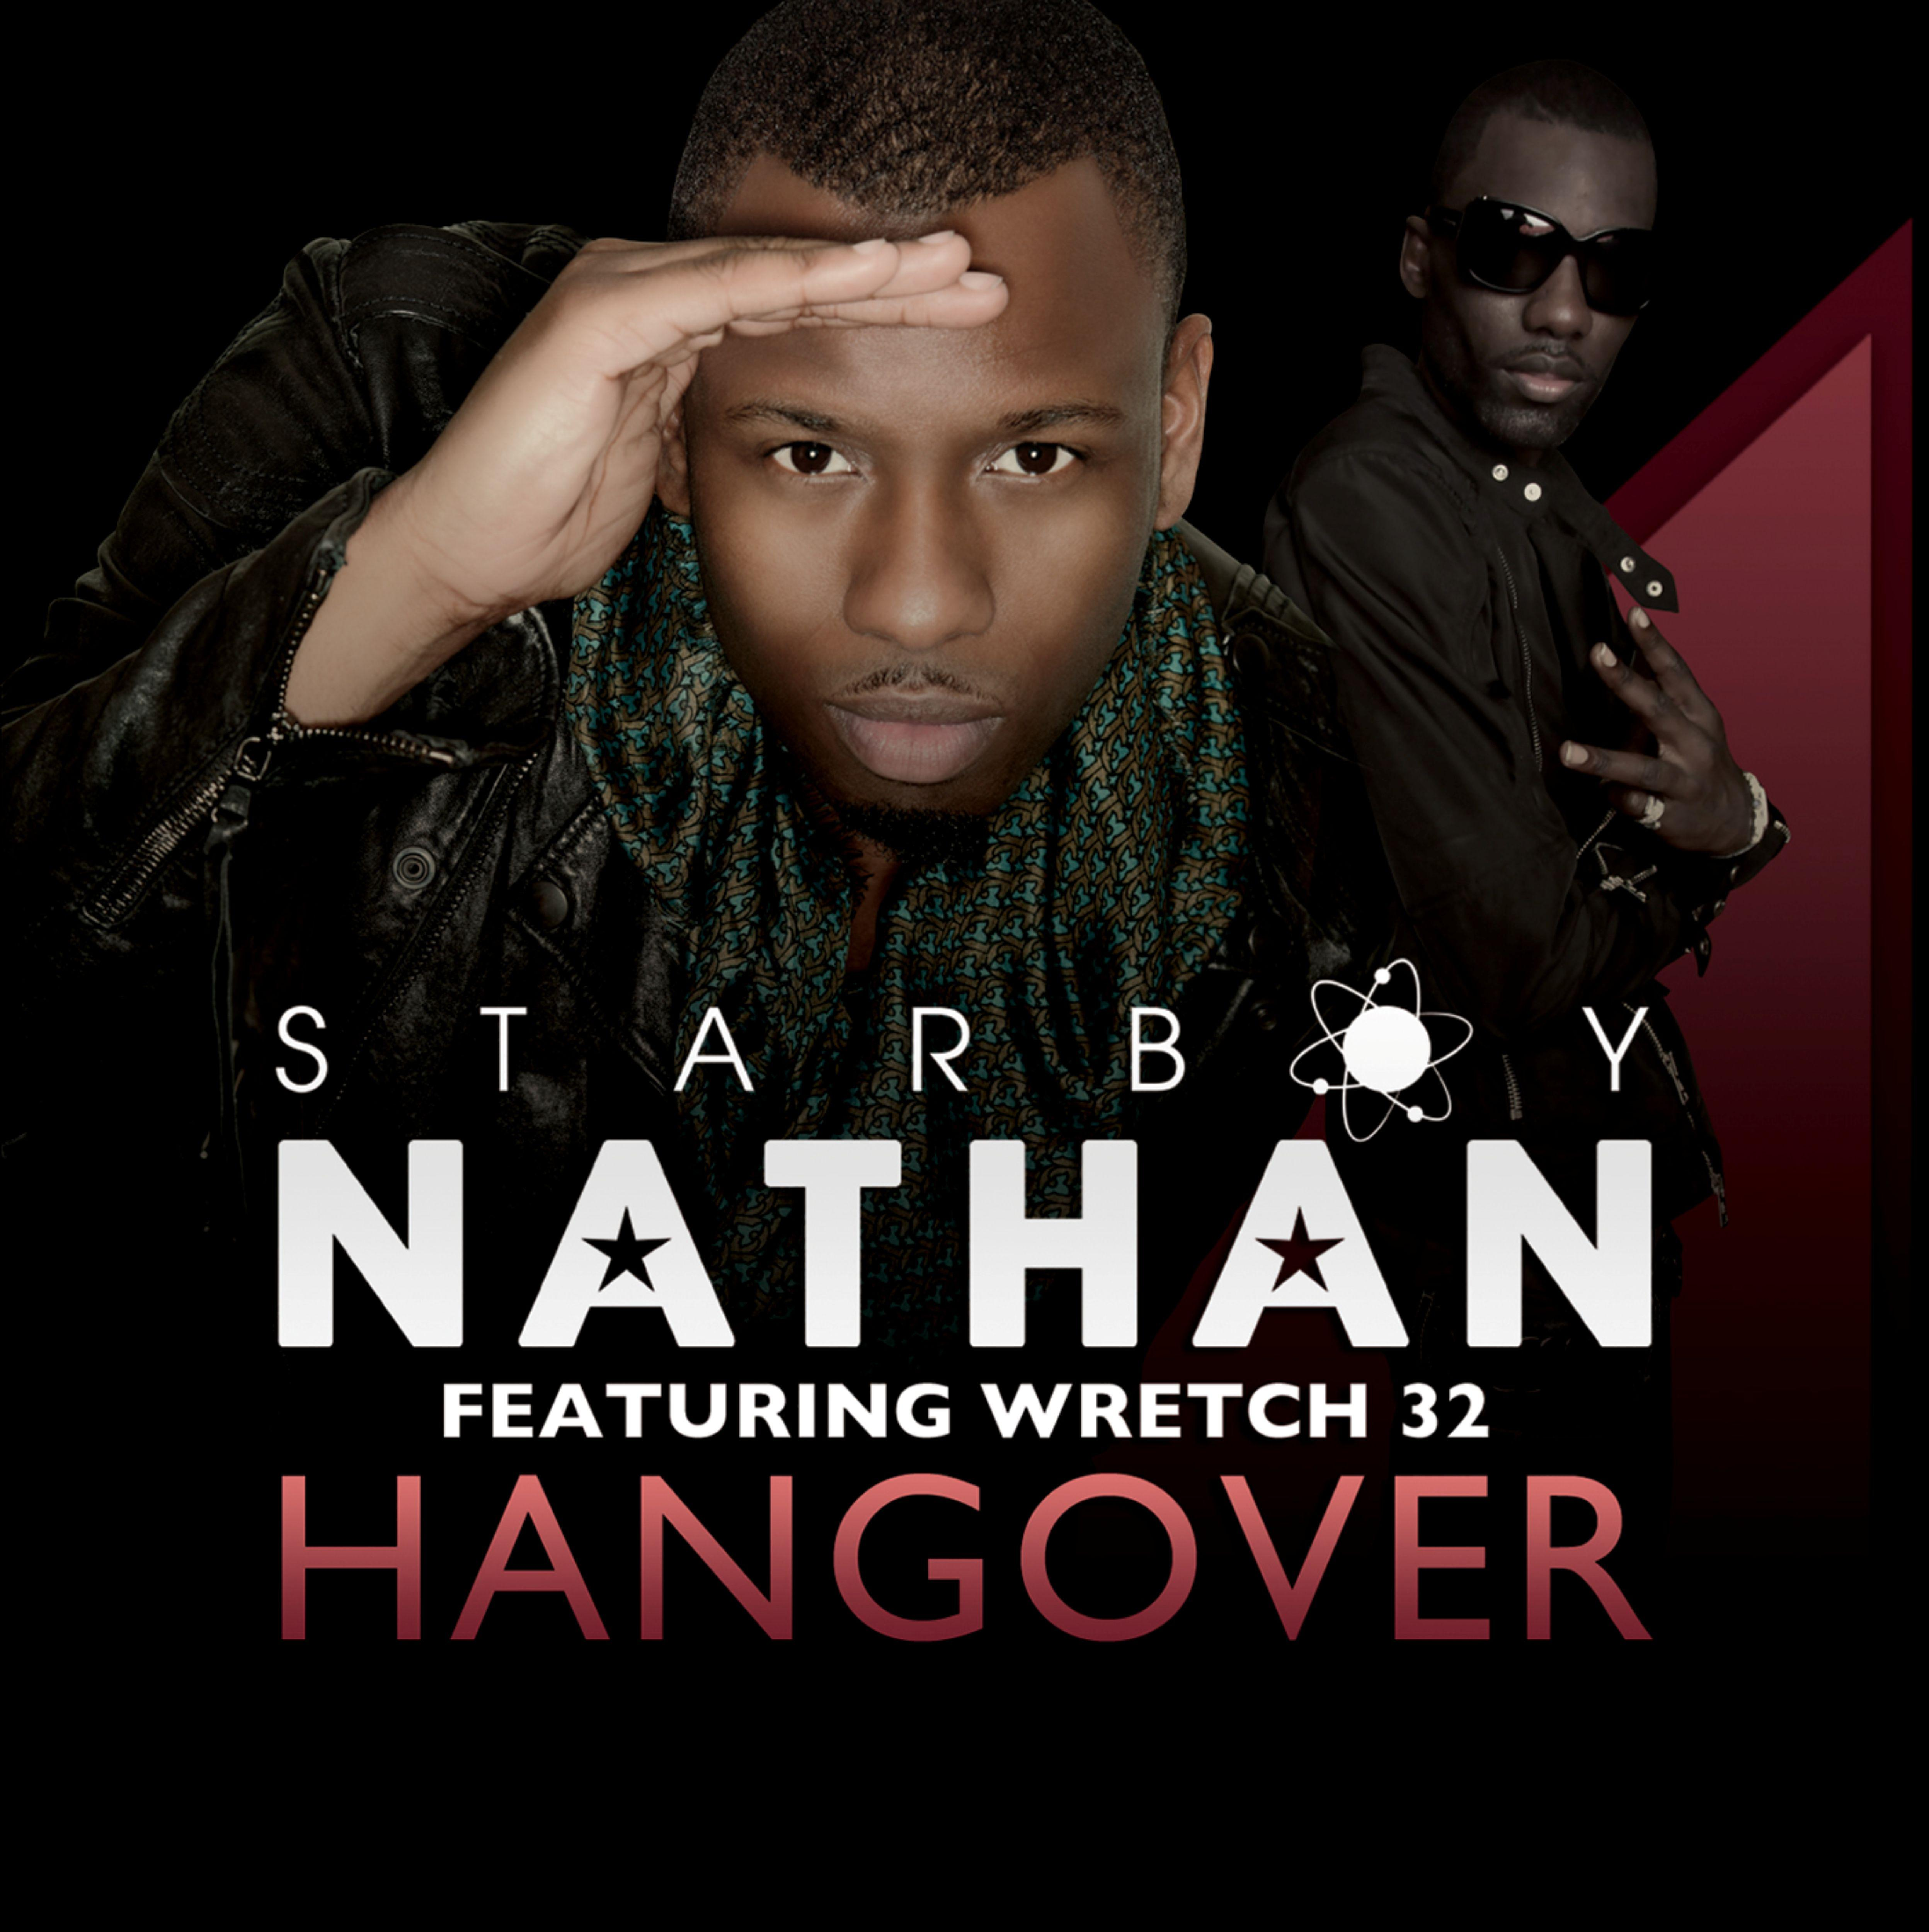 Hangover (feat. Wretch 32) - Single